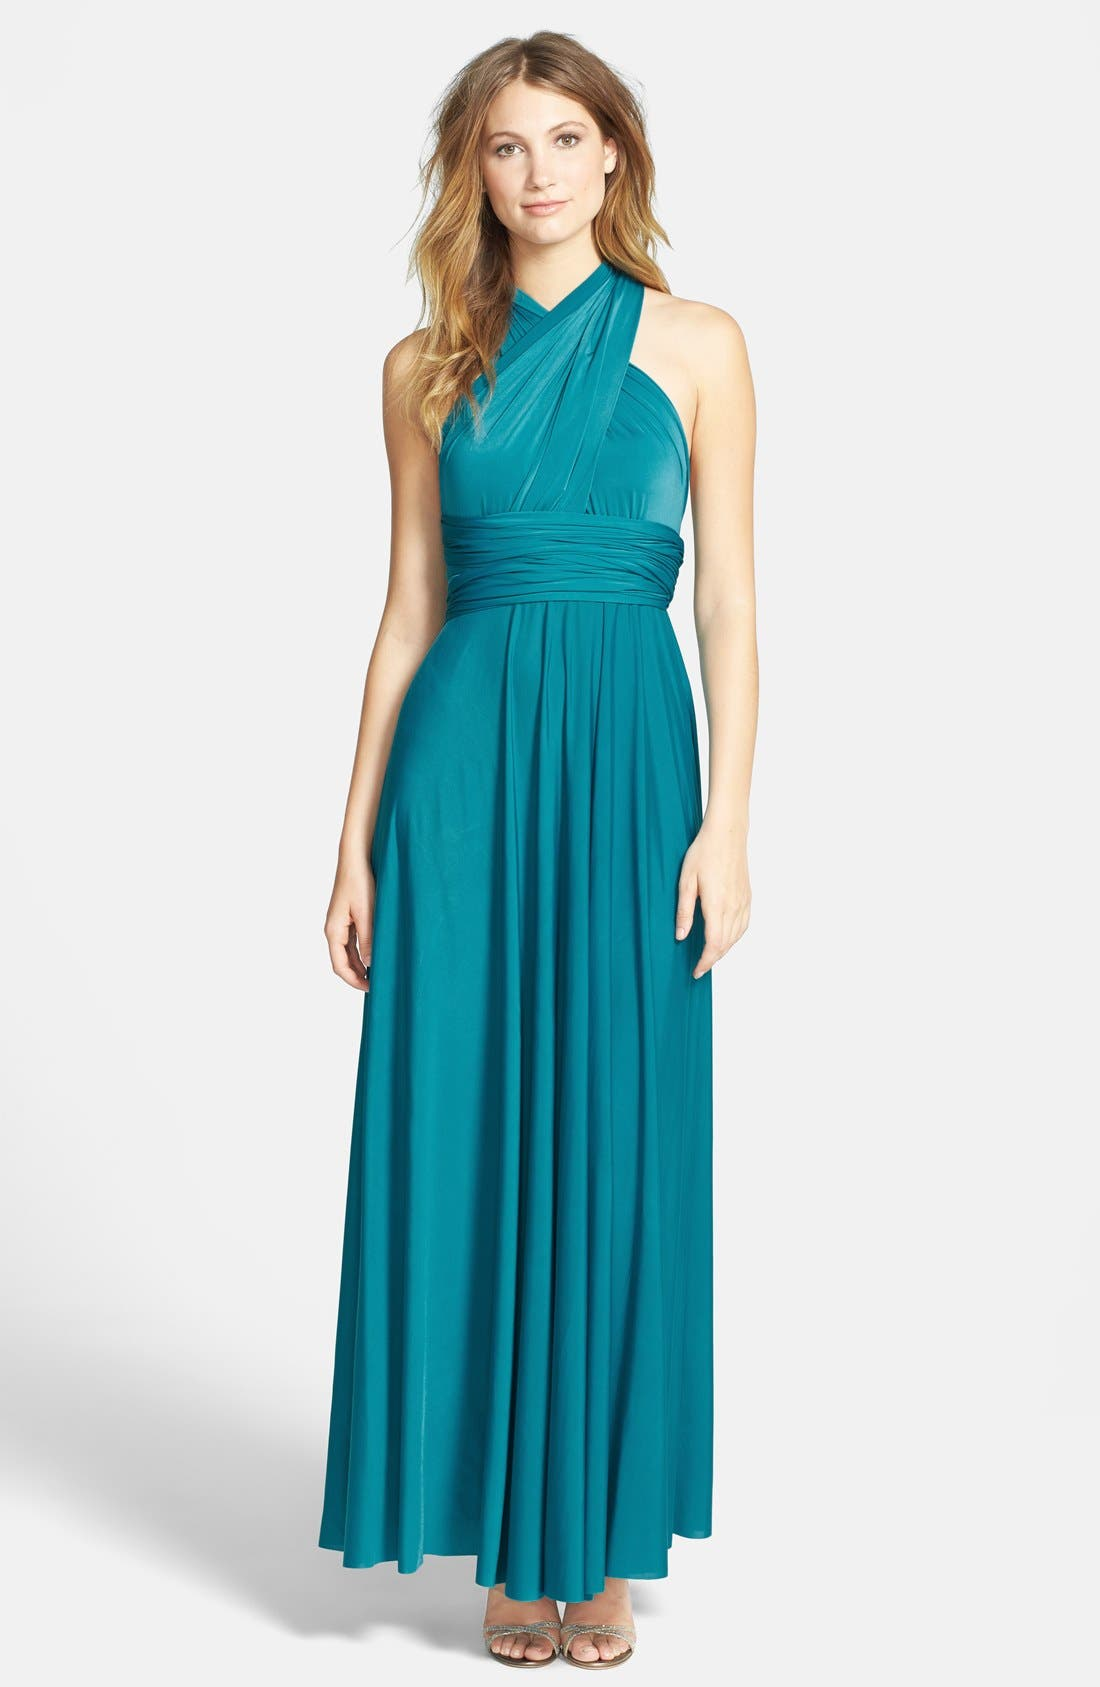 A-Line Bridesmaid Dresses | Nordstrom